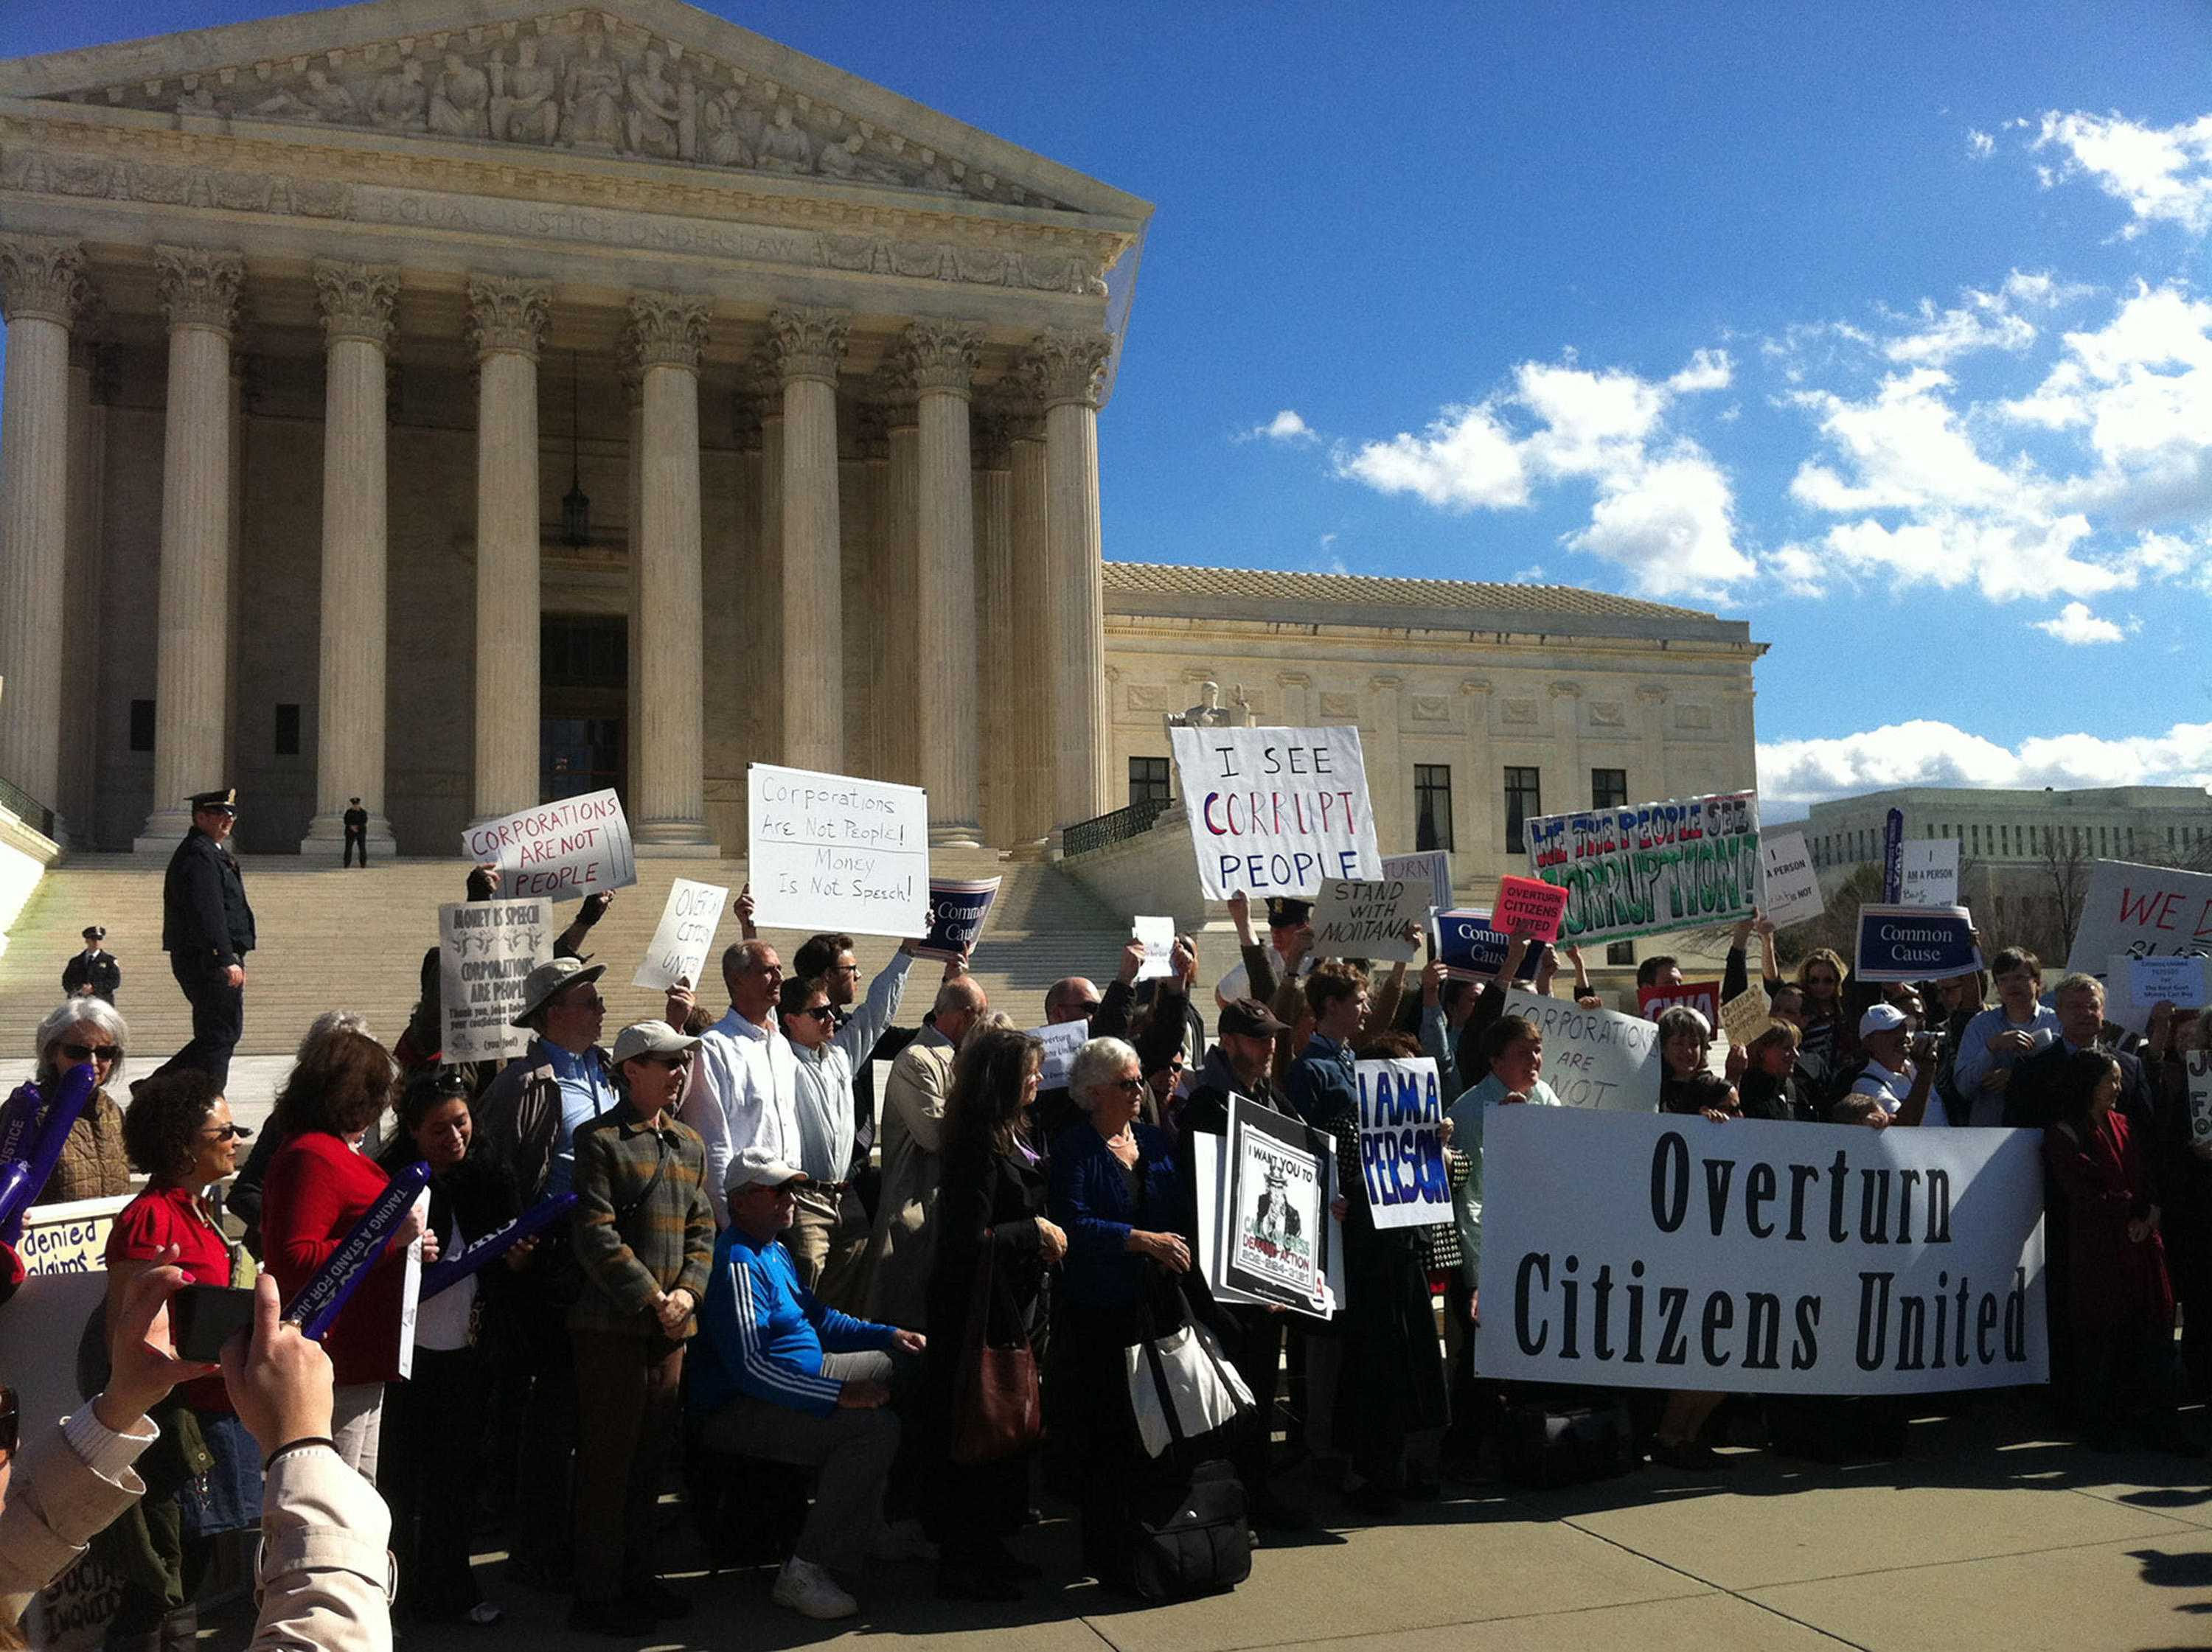 """Protesters outside the Supreme Court in 2012 rally against the court's decision in Citizens United, one of two rulings that has helped boost the influence of so-called """"dark money"""" groups in elections. (Photo by Jordan Krueger via flickr/Creative Commons/Cronkite News Service/TNS)"""